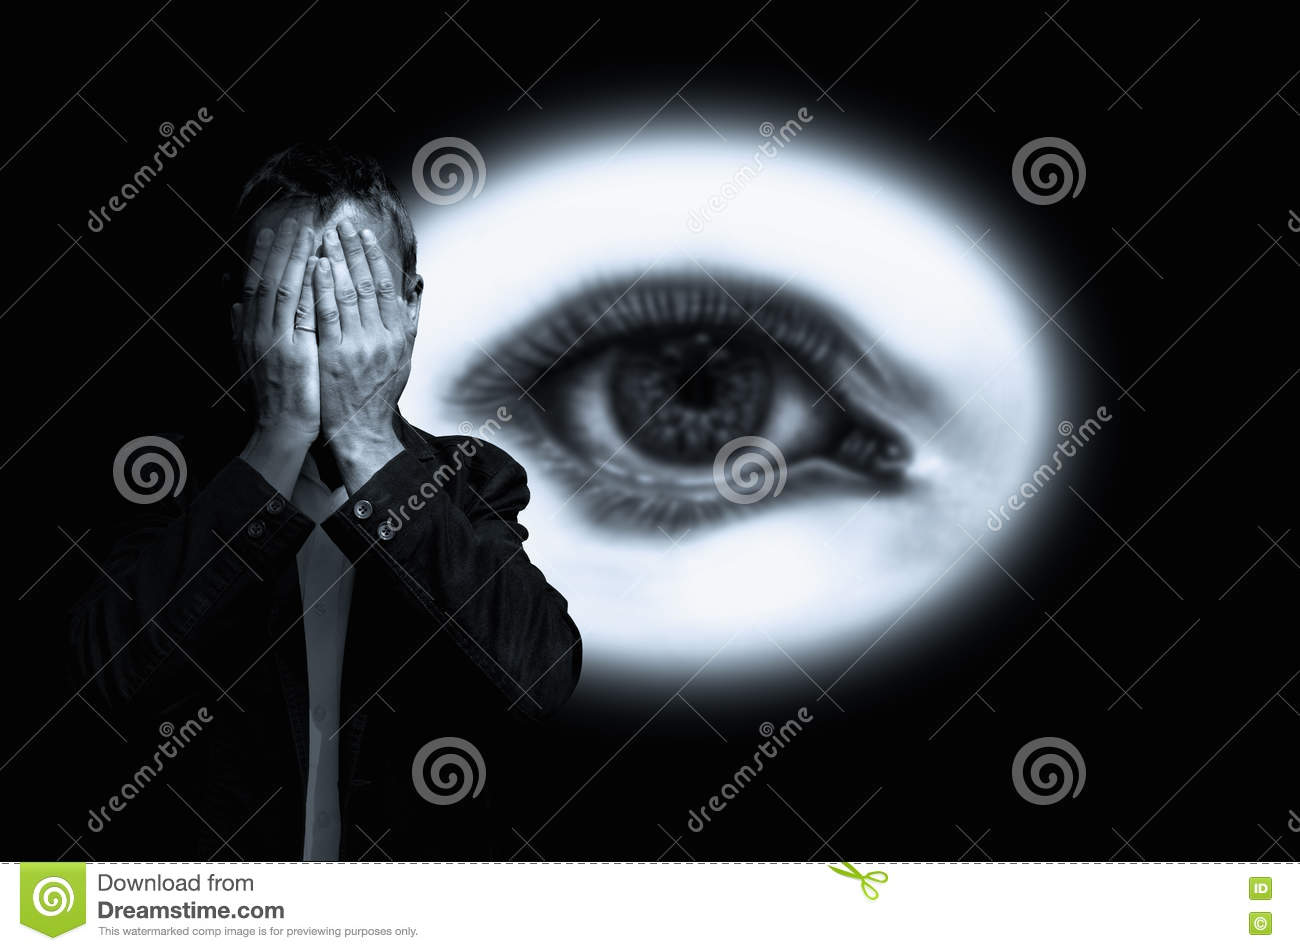 Man hiding his face on background with eye in white circle.